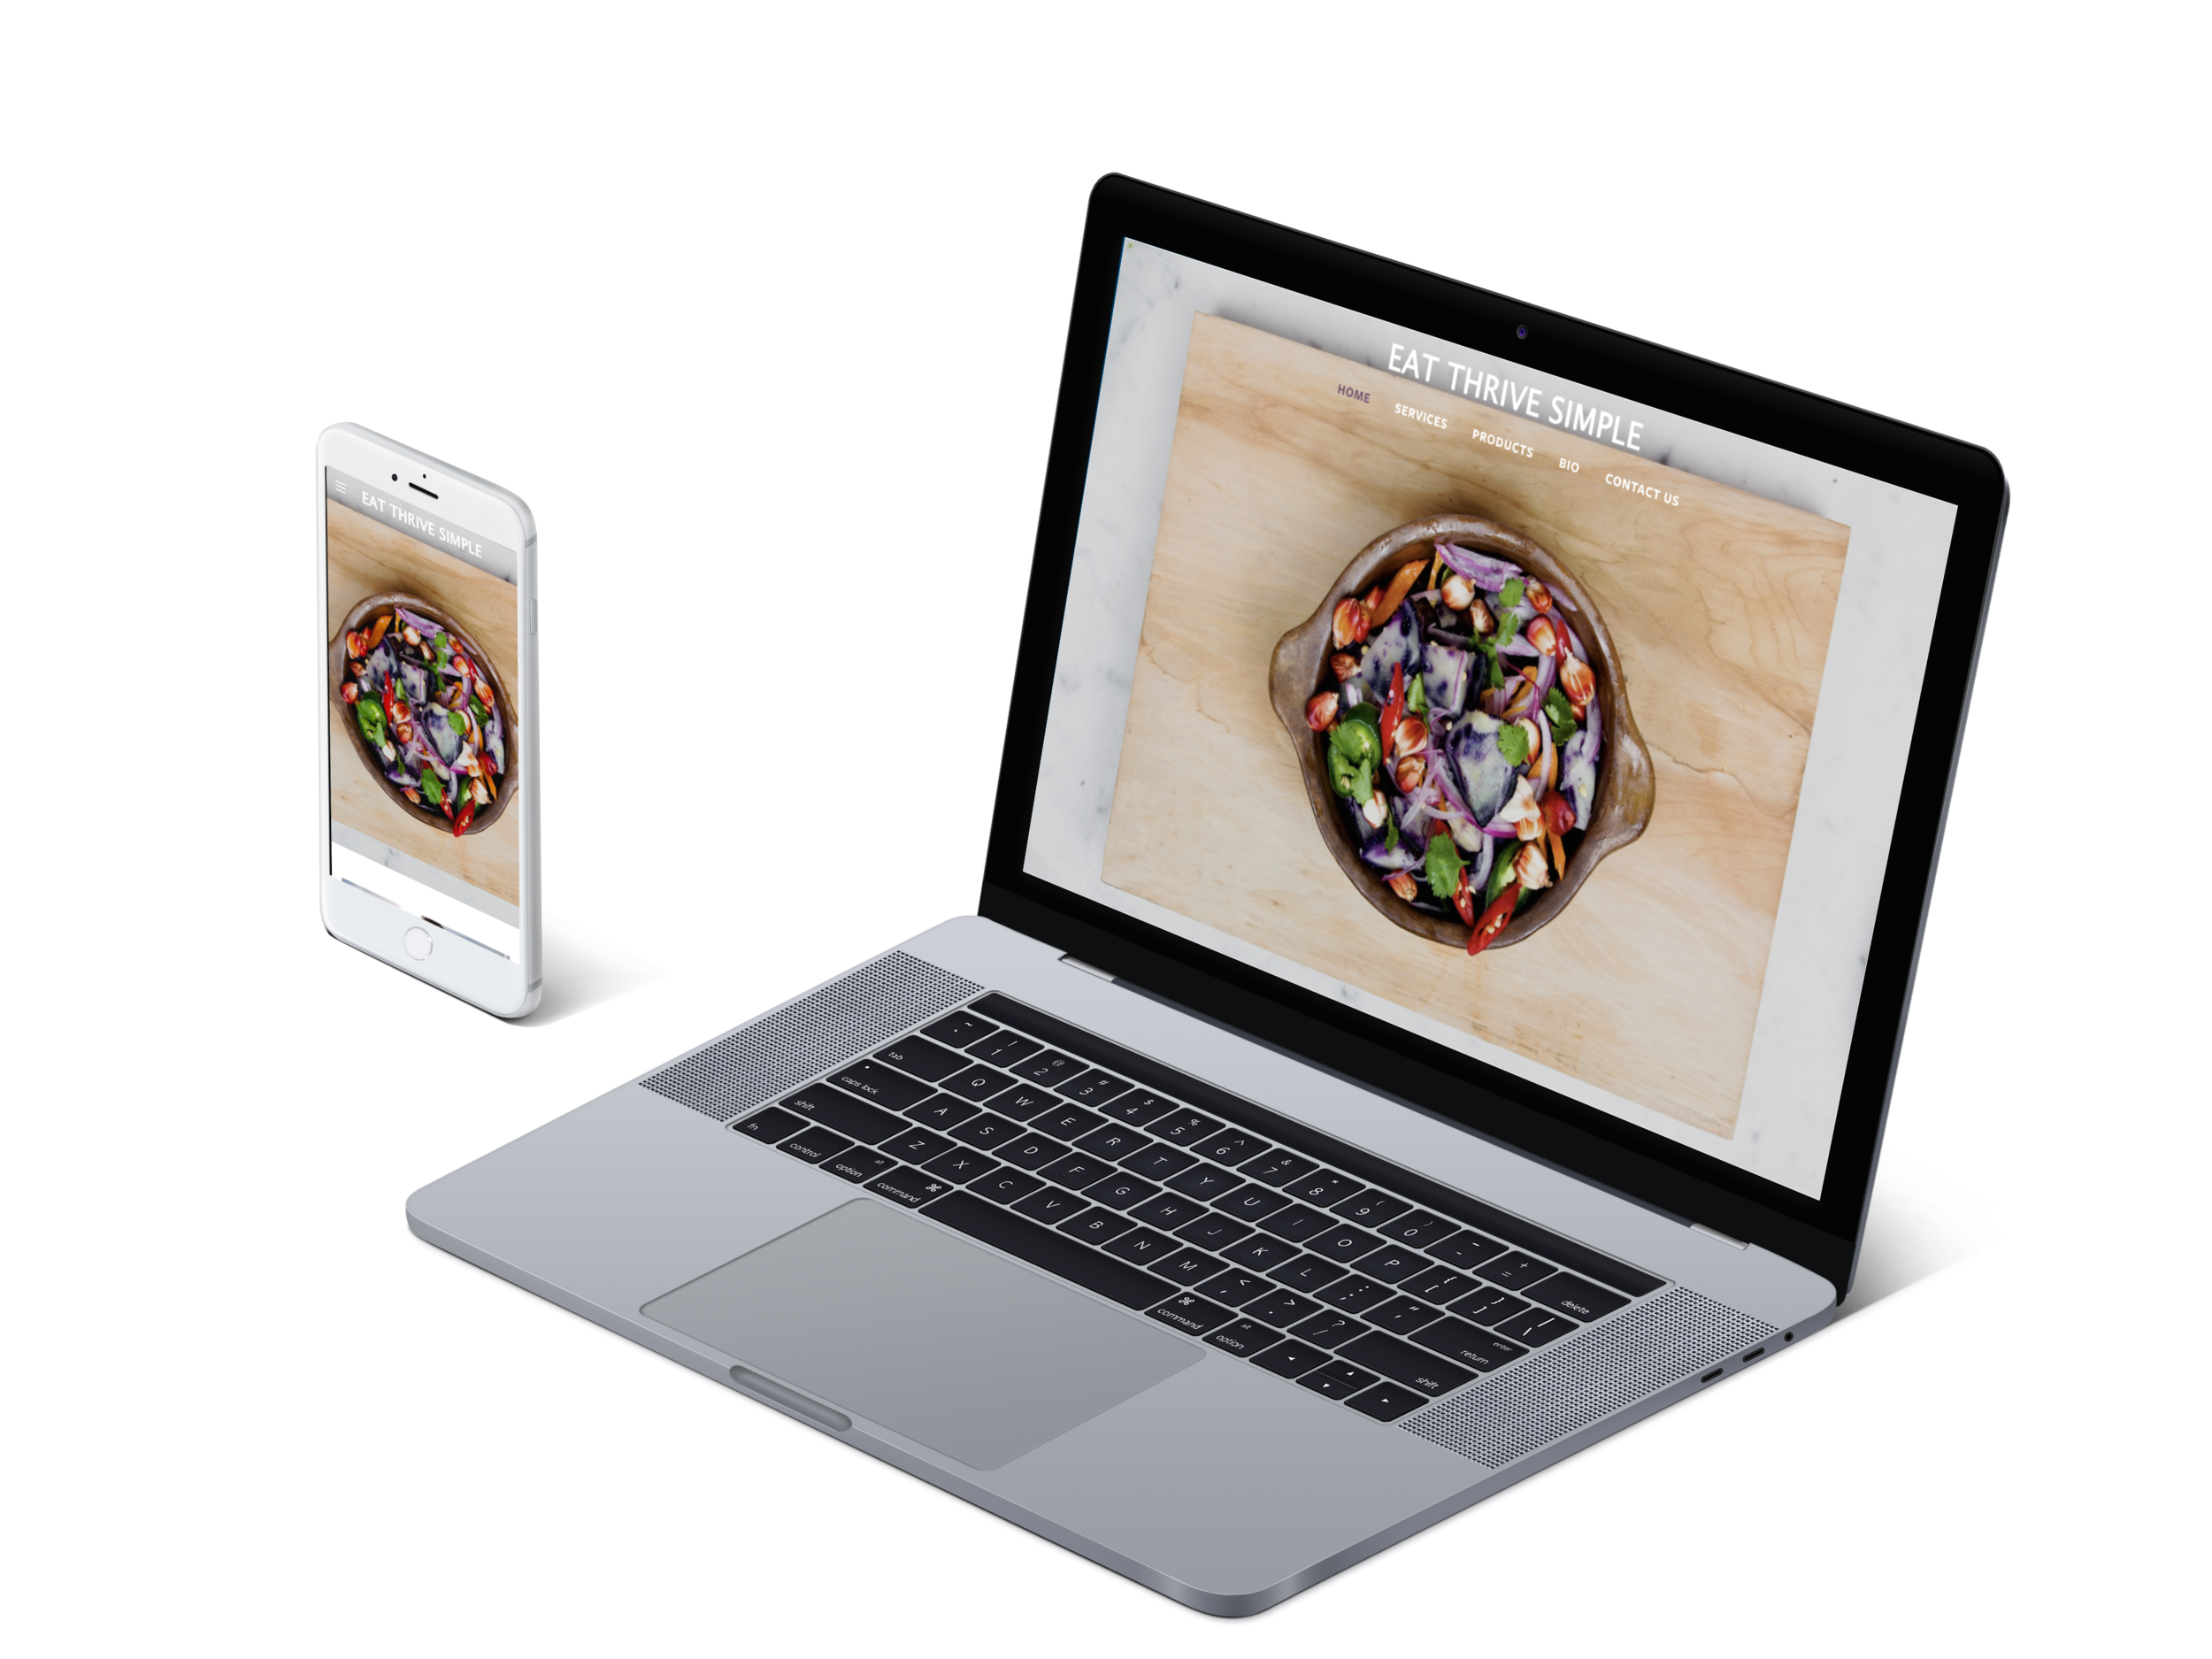 mockup-of-a-macbook-pro-with-touch-bar-and-iphone-7-in-portrait-position-over-a-transparent-background-a12834.png